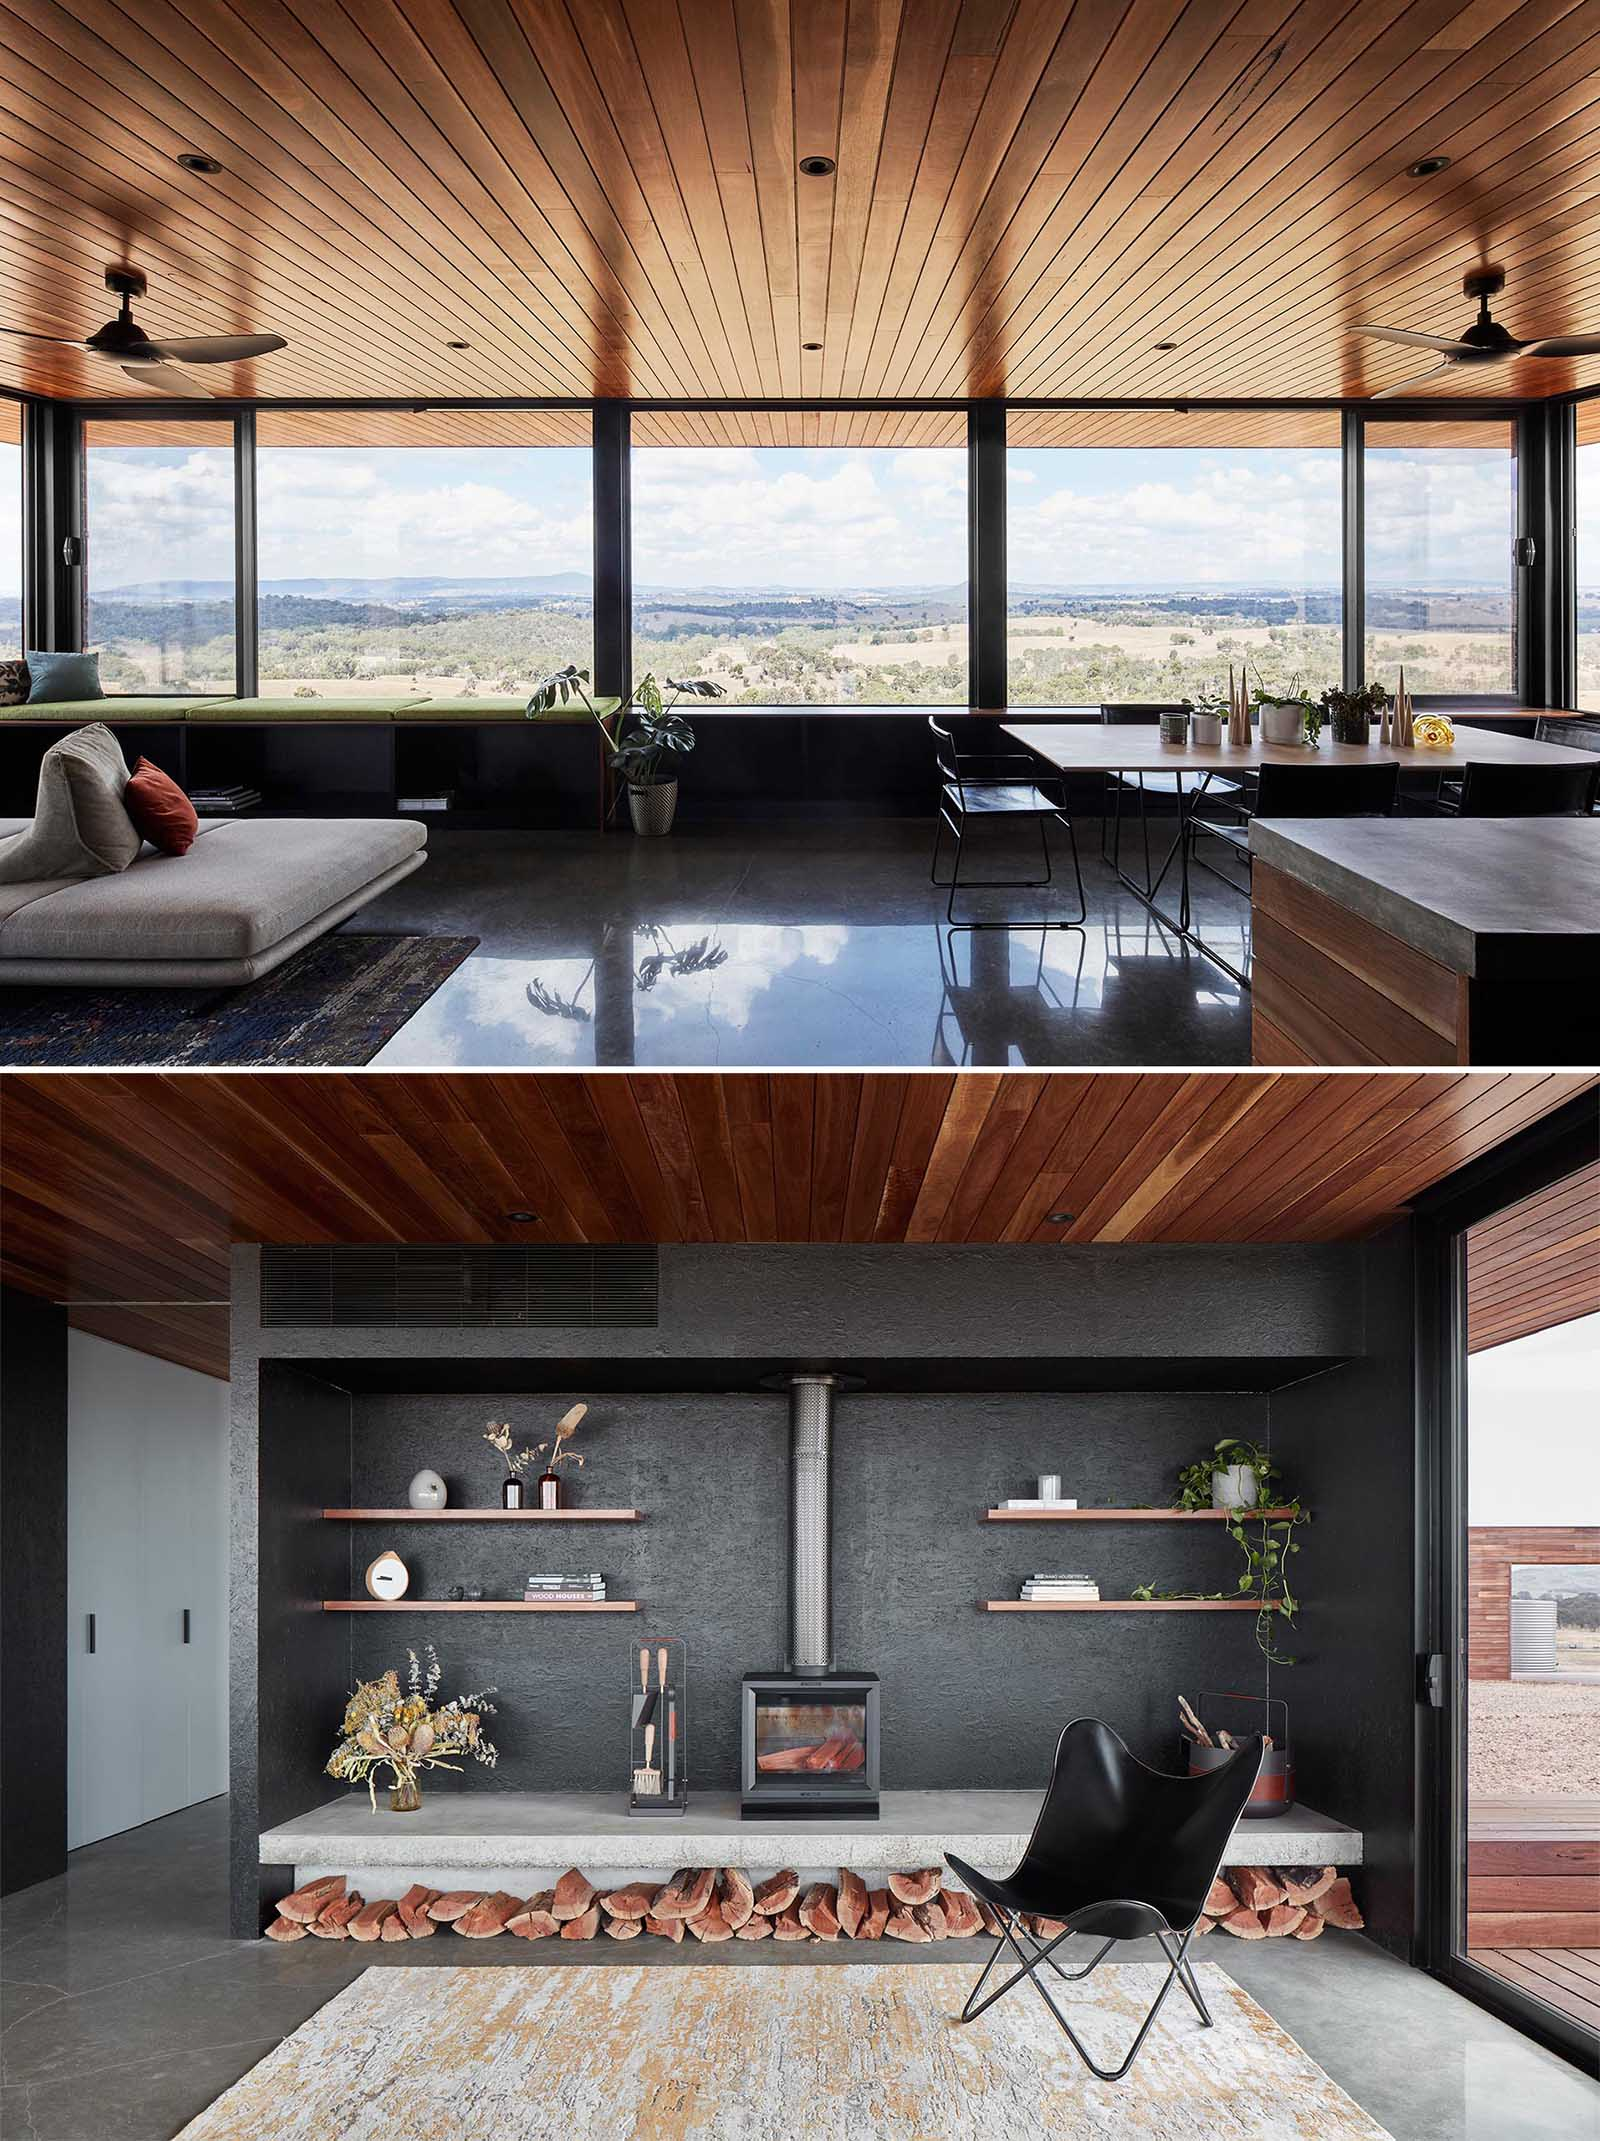 The living space of this small house, has a wood ceiling and large windows, and is open plan with a dining area and kitchen, while the living room includes black accent wall with a fireplace, and a window bench.